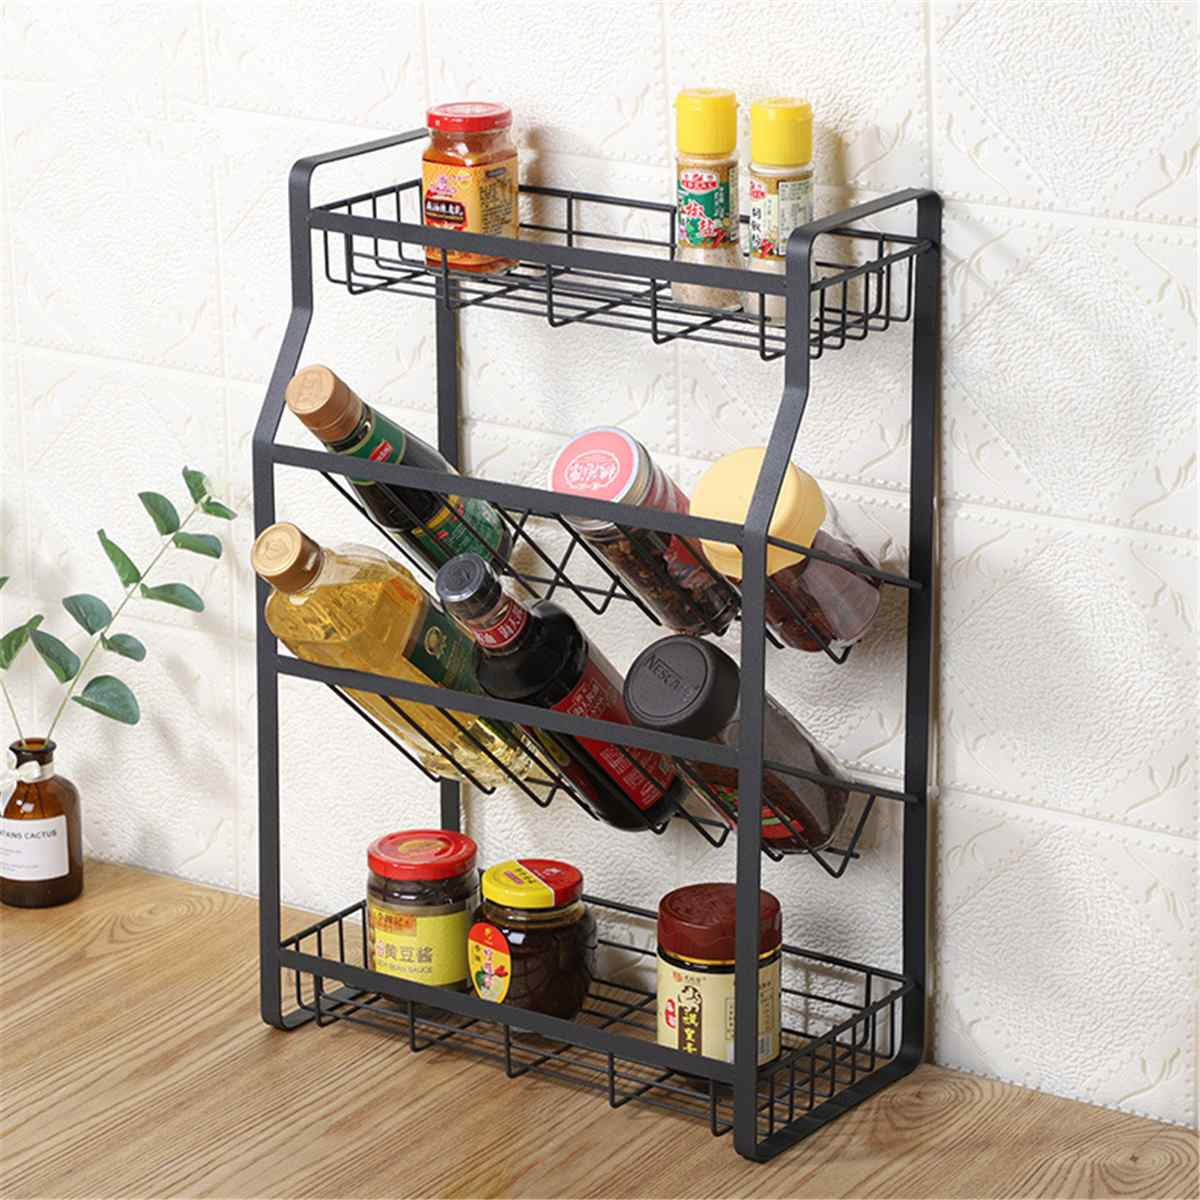 4 Tier Kitchen Spice Storage Rack Seasoning Shelf Oblique Bottom Style Cutlery Standing Holder Jar Organizer Kitchen Accessories